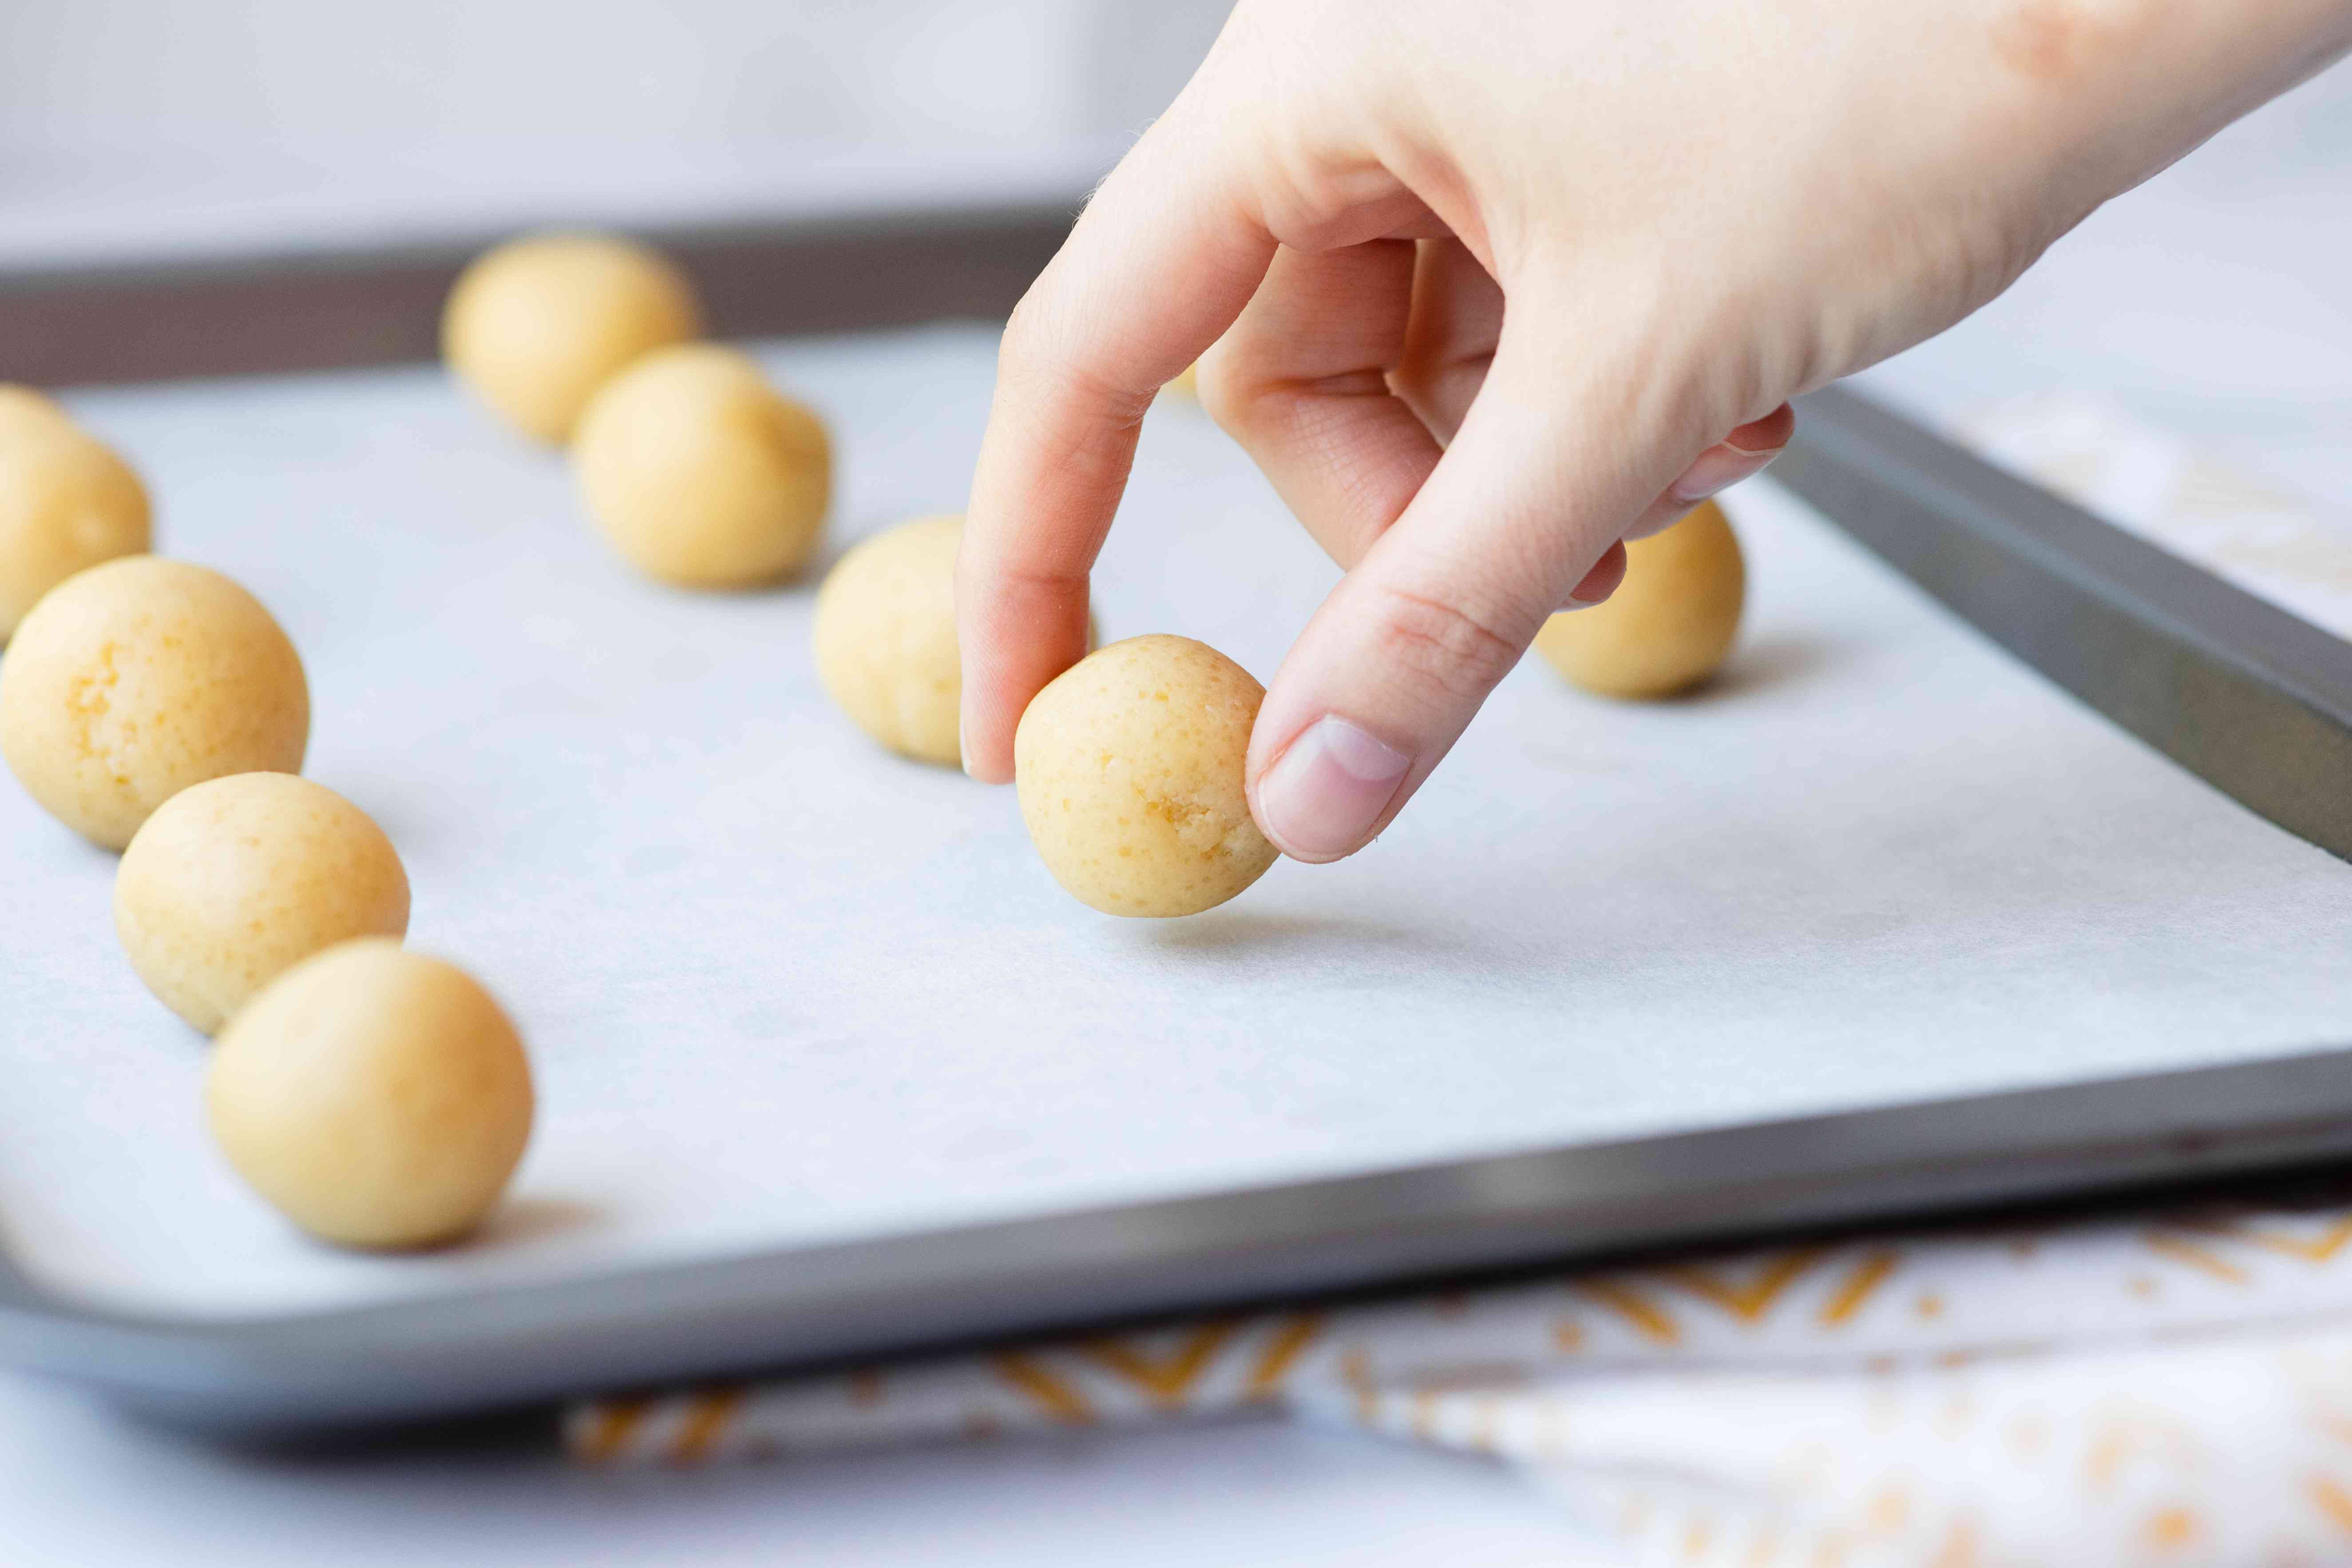 Balls of dough set on a parchment covered baking sheet to make a Chinese almond cookie recipe.